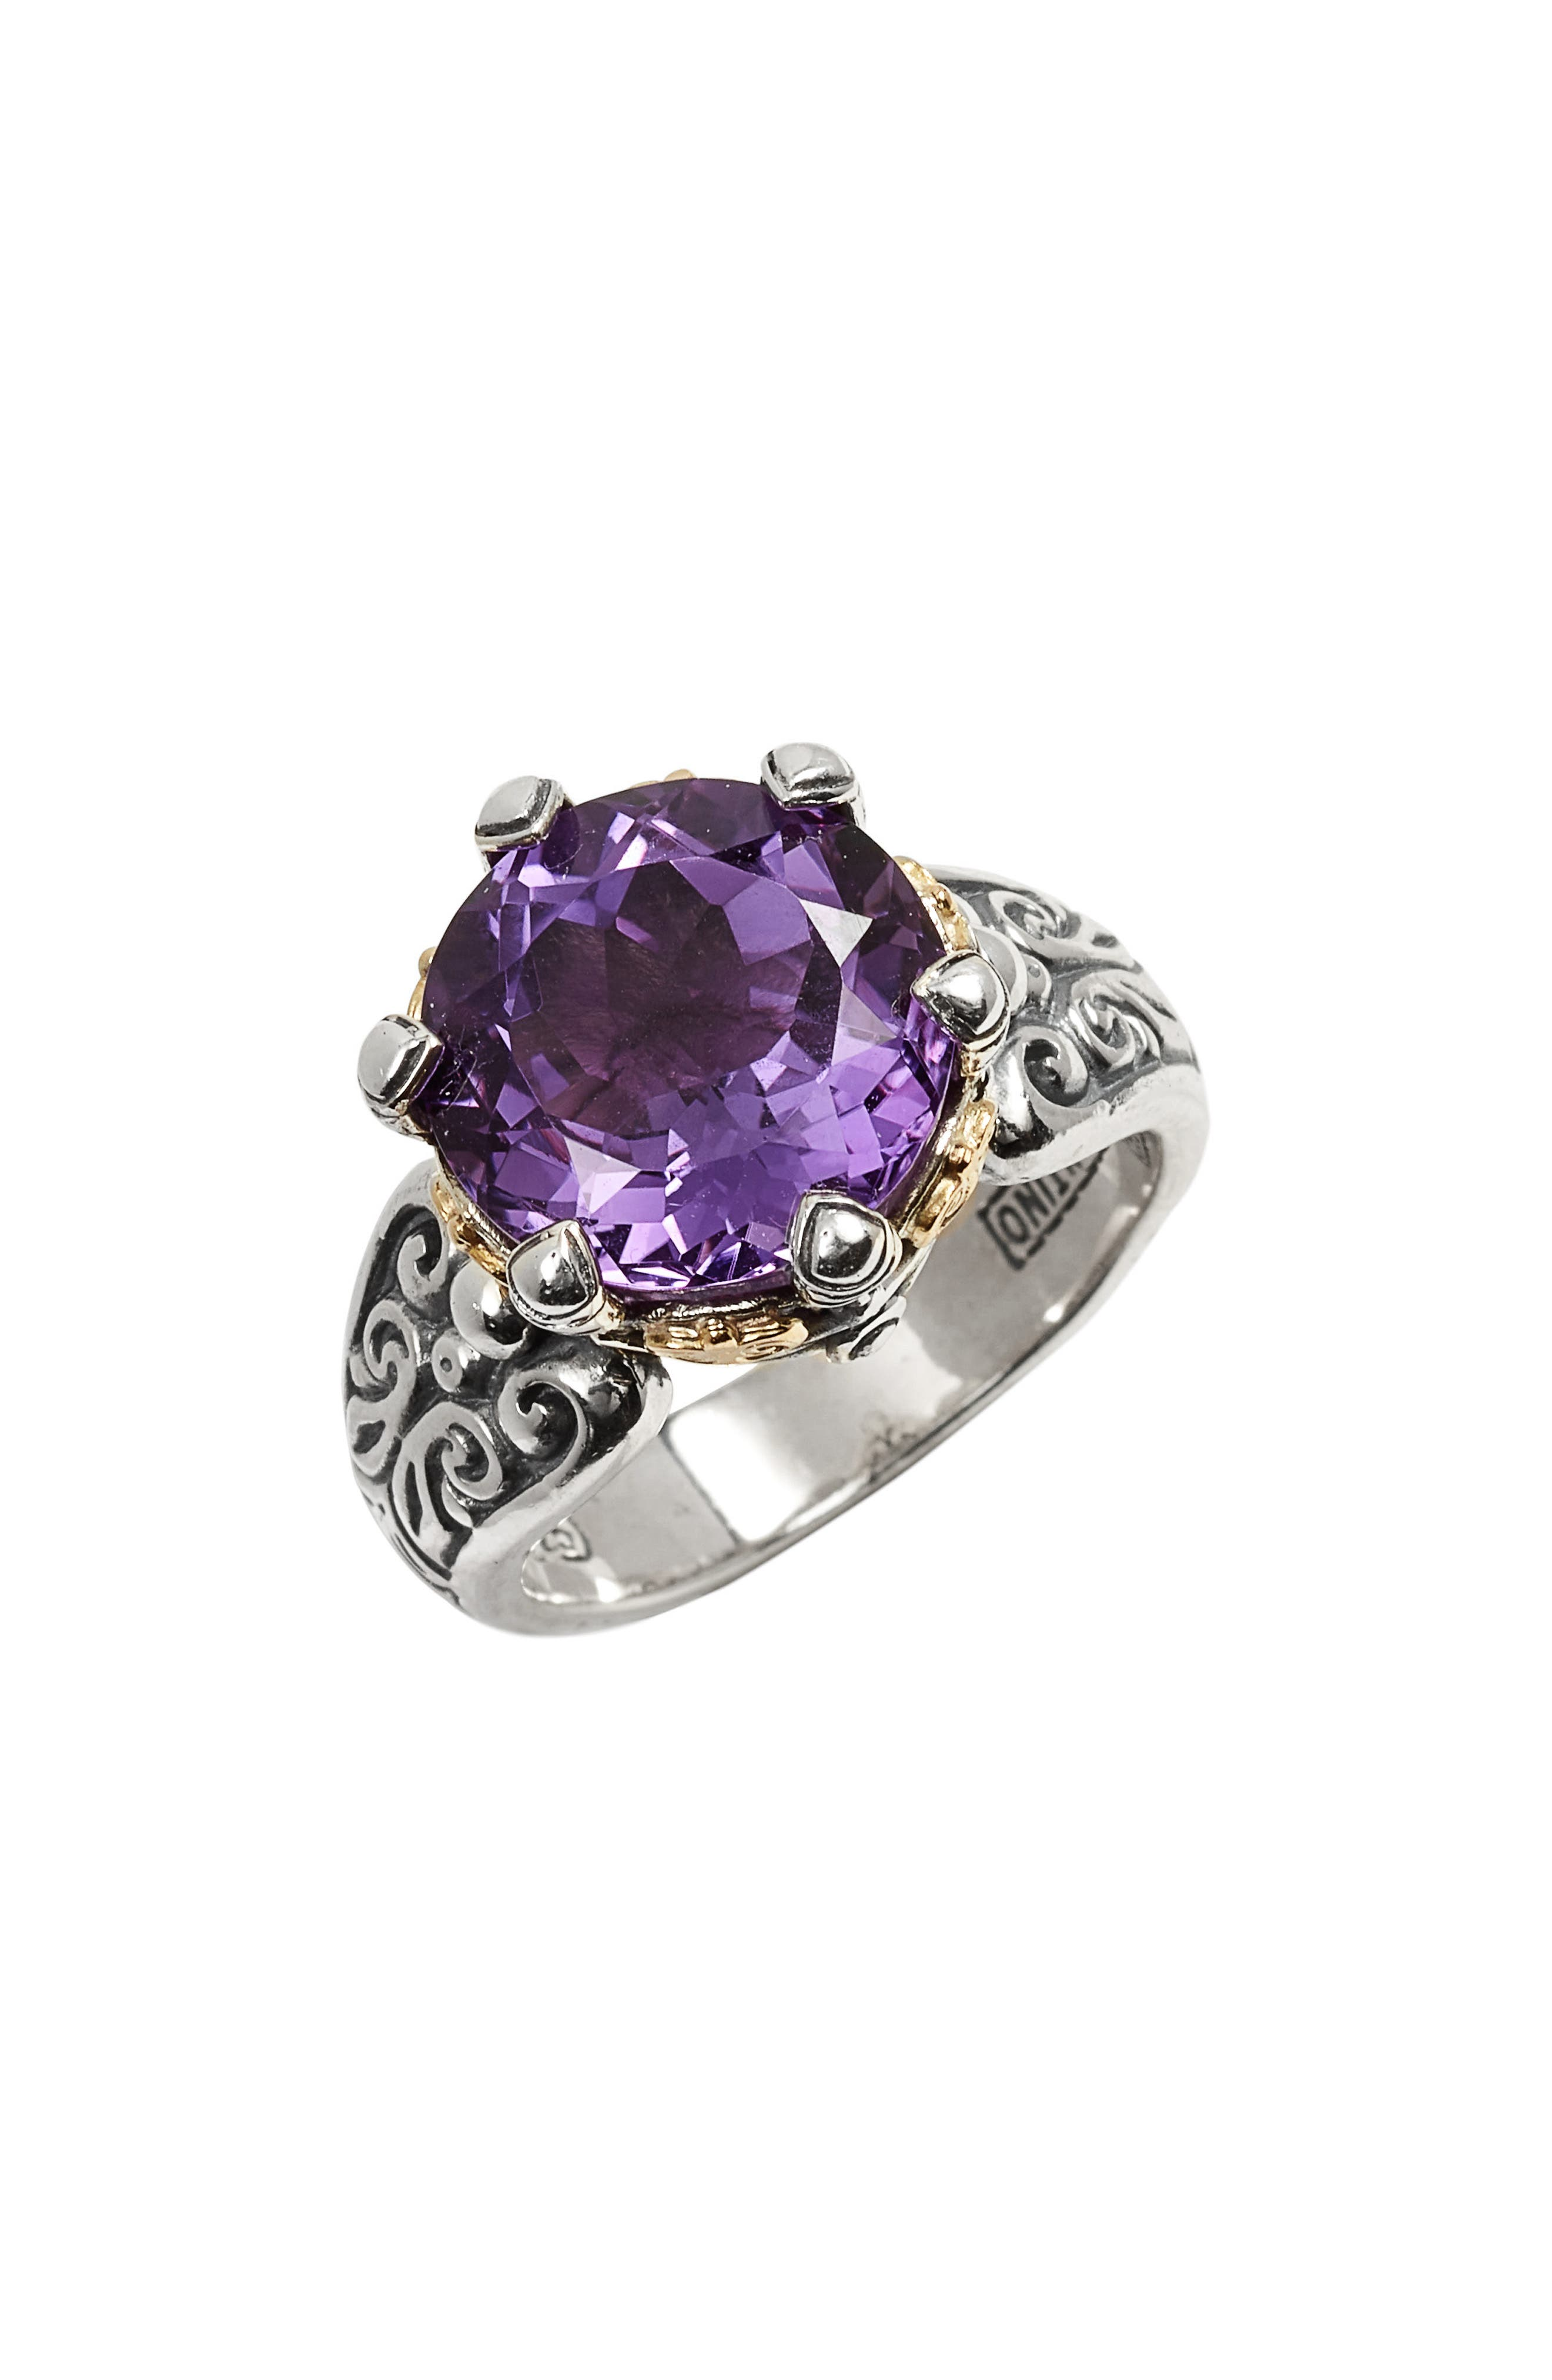 KONSTANTINO HERMIONE TWO-TONE STONE RING